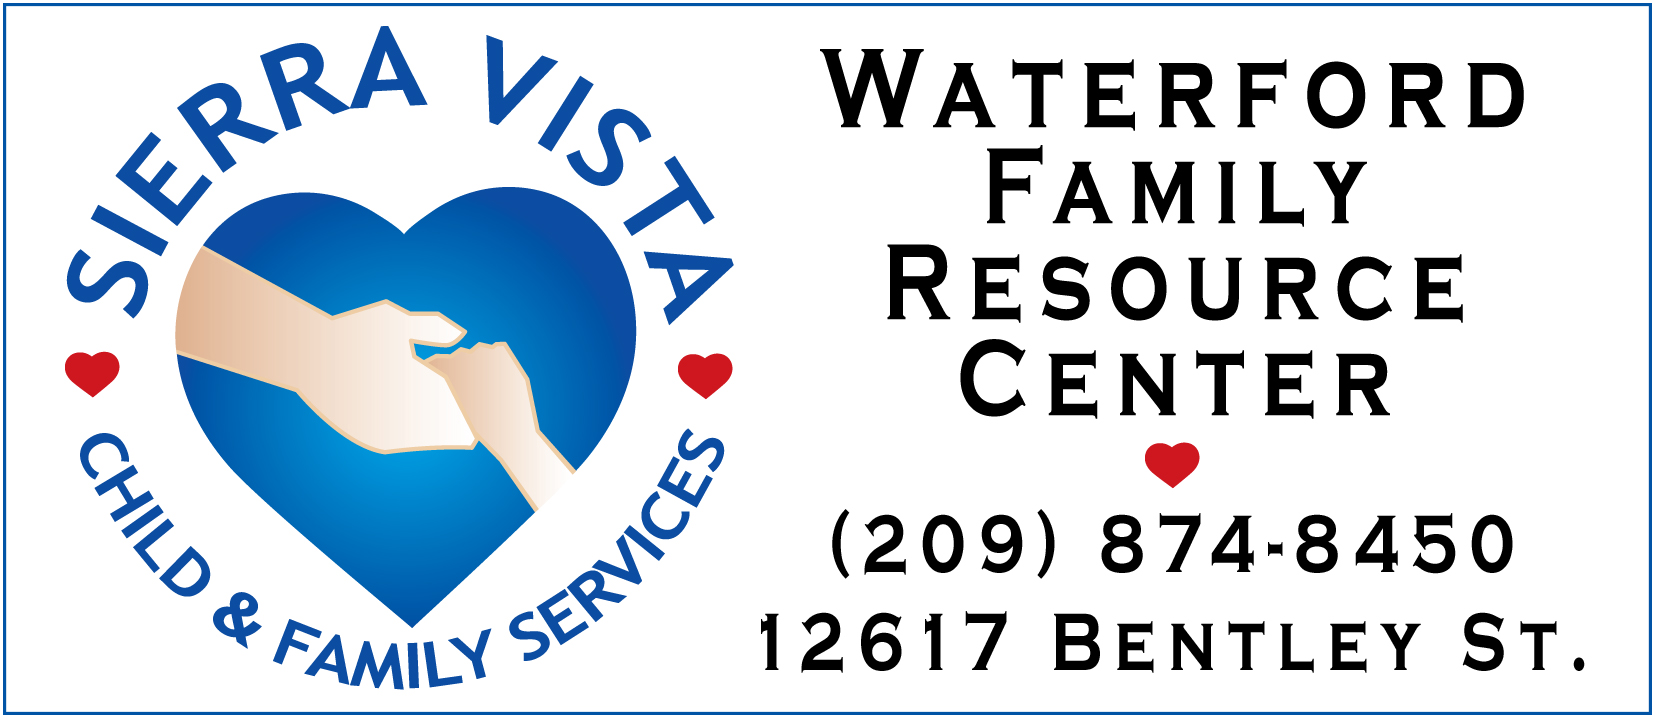 Waterford Family Resource Center